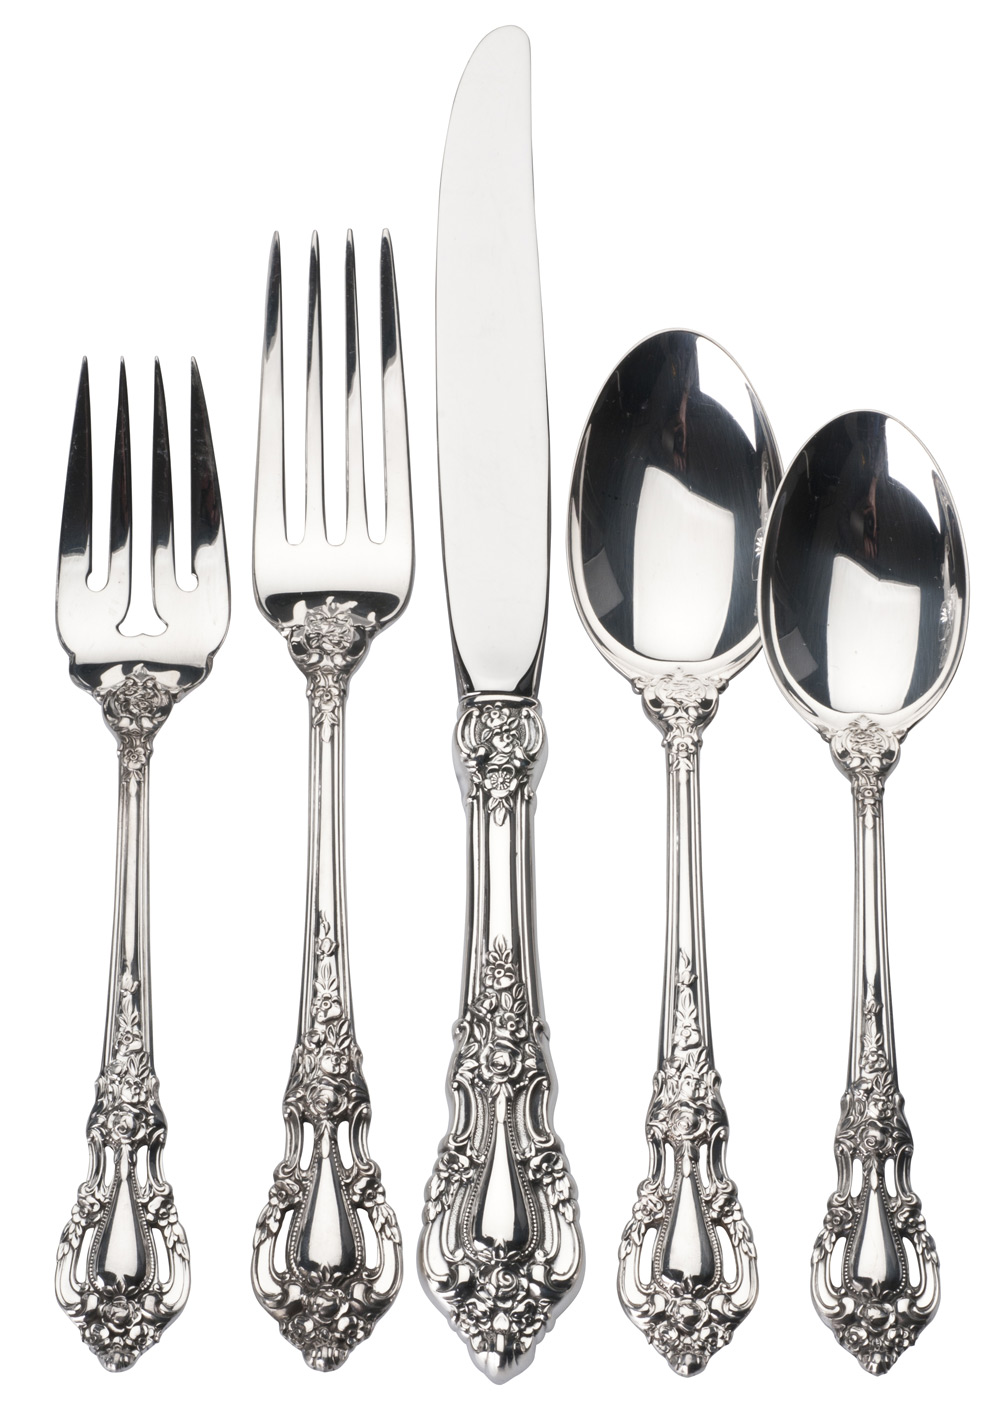 Eloquence 5 piece setting